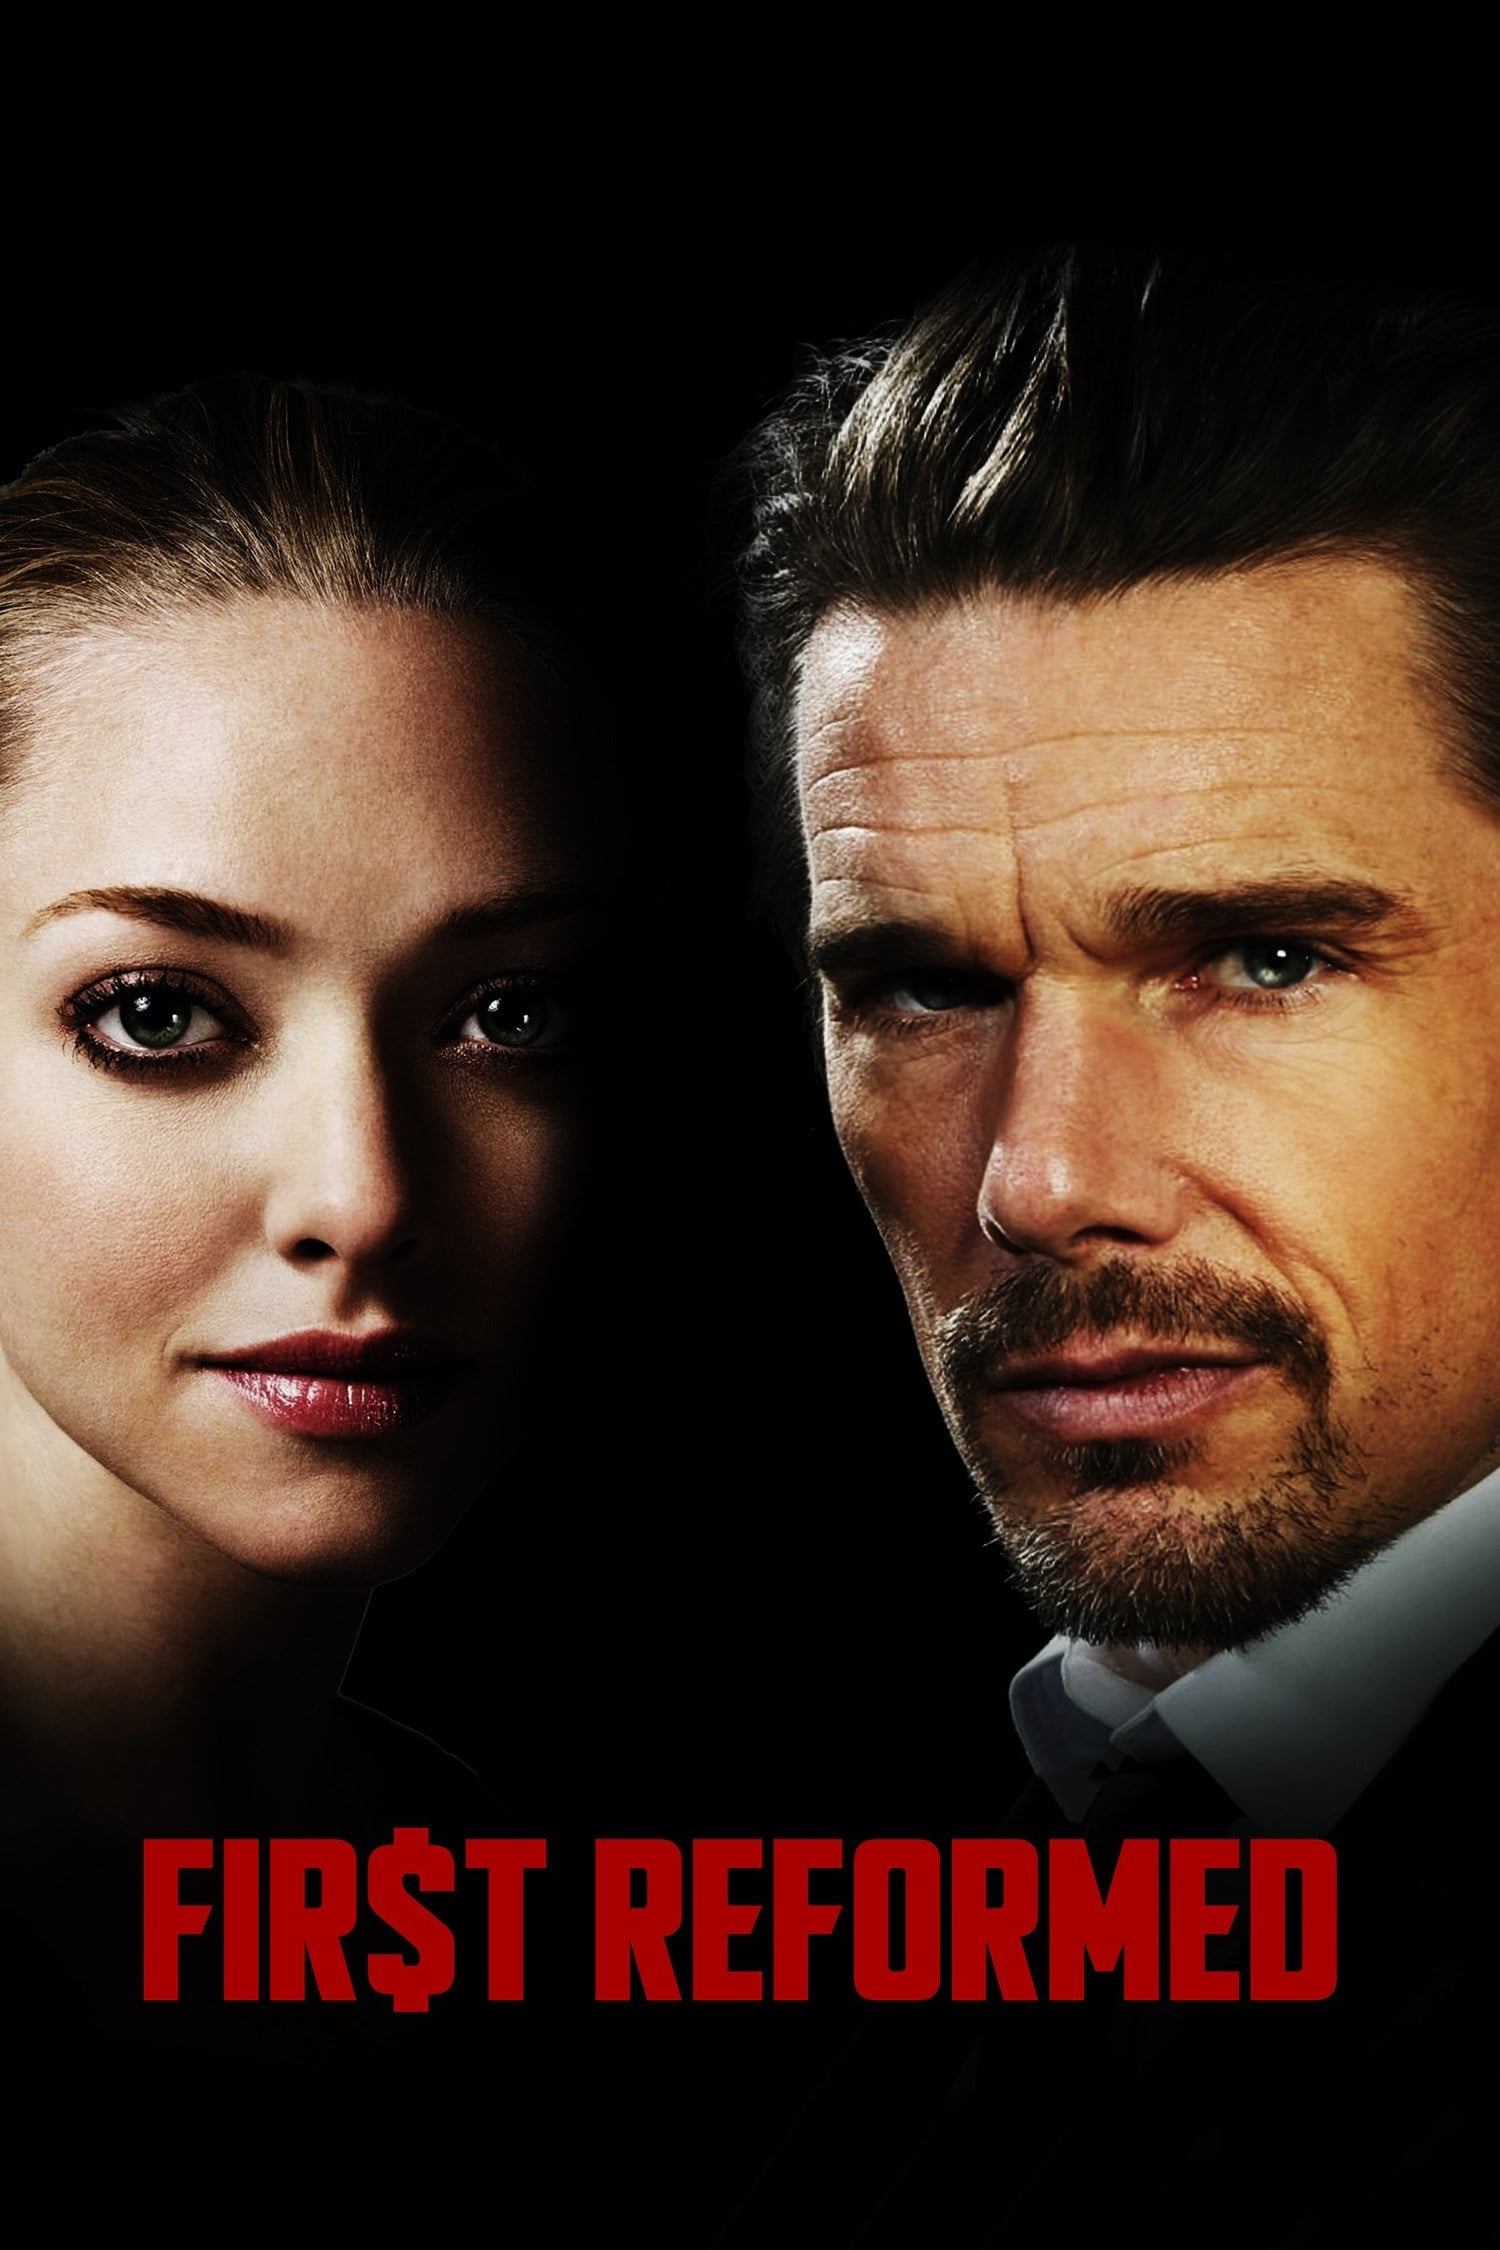 Poster and image movie Film First Reformed - First Reformed - First Reformed -  2017